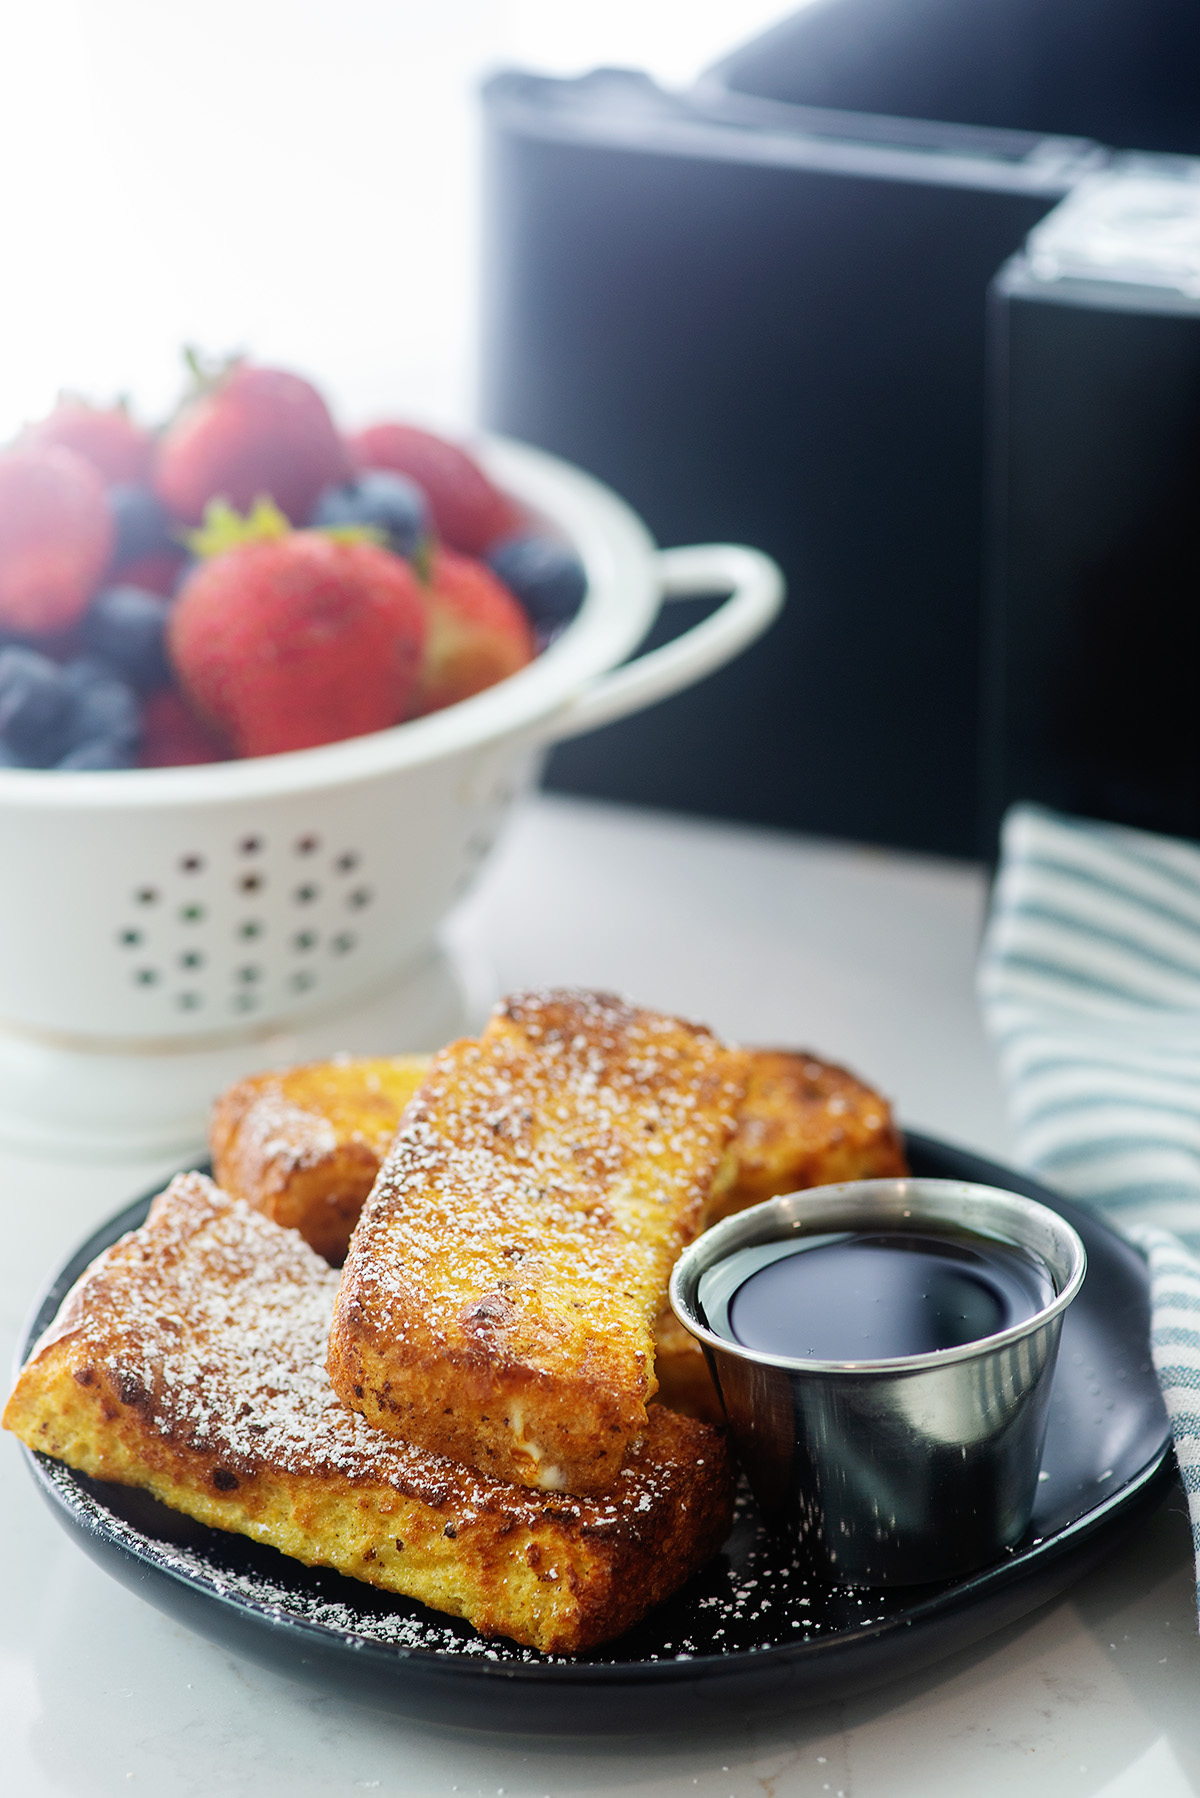 Small black plate of French toast sticks in front of a bowl of fruit